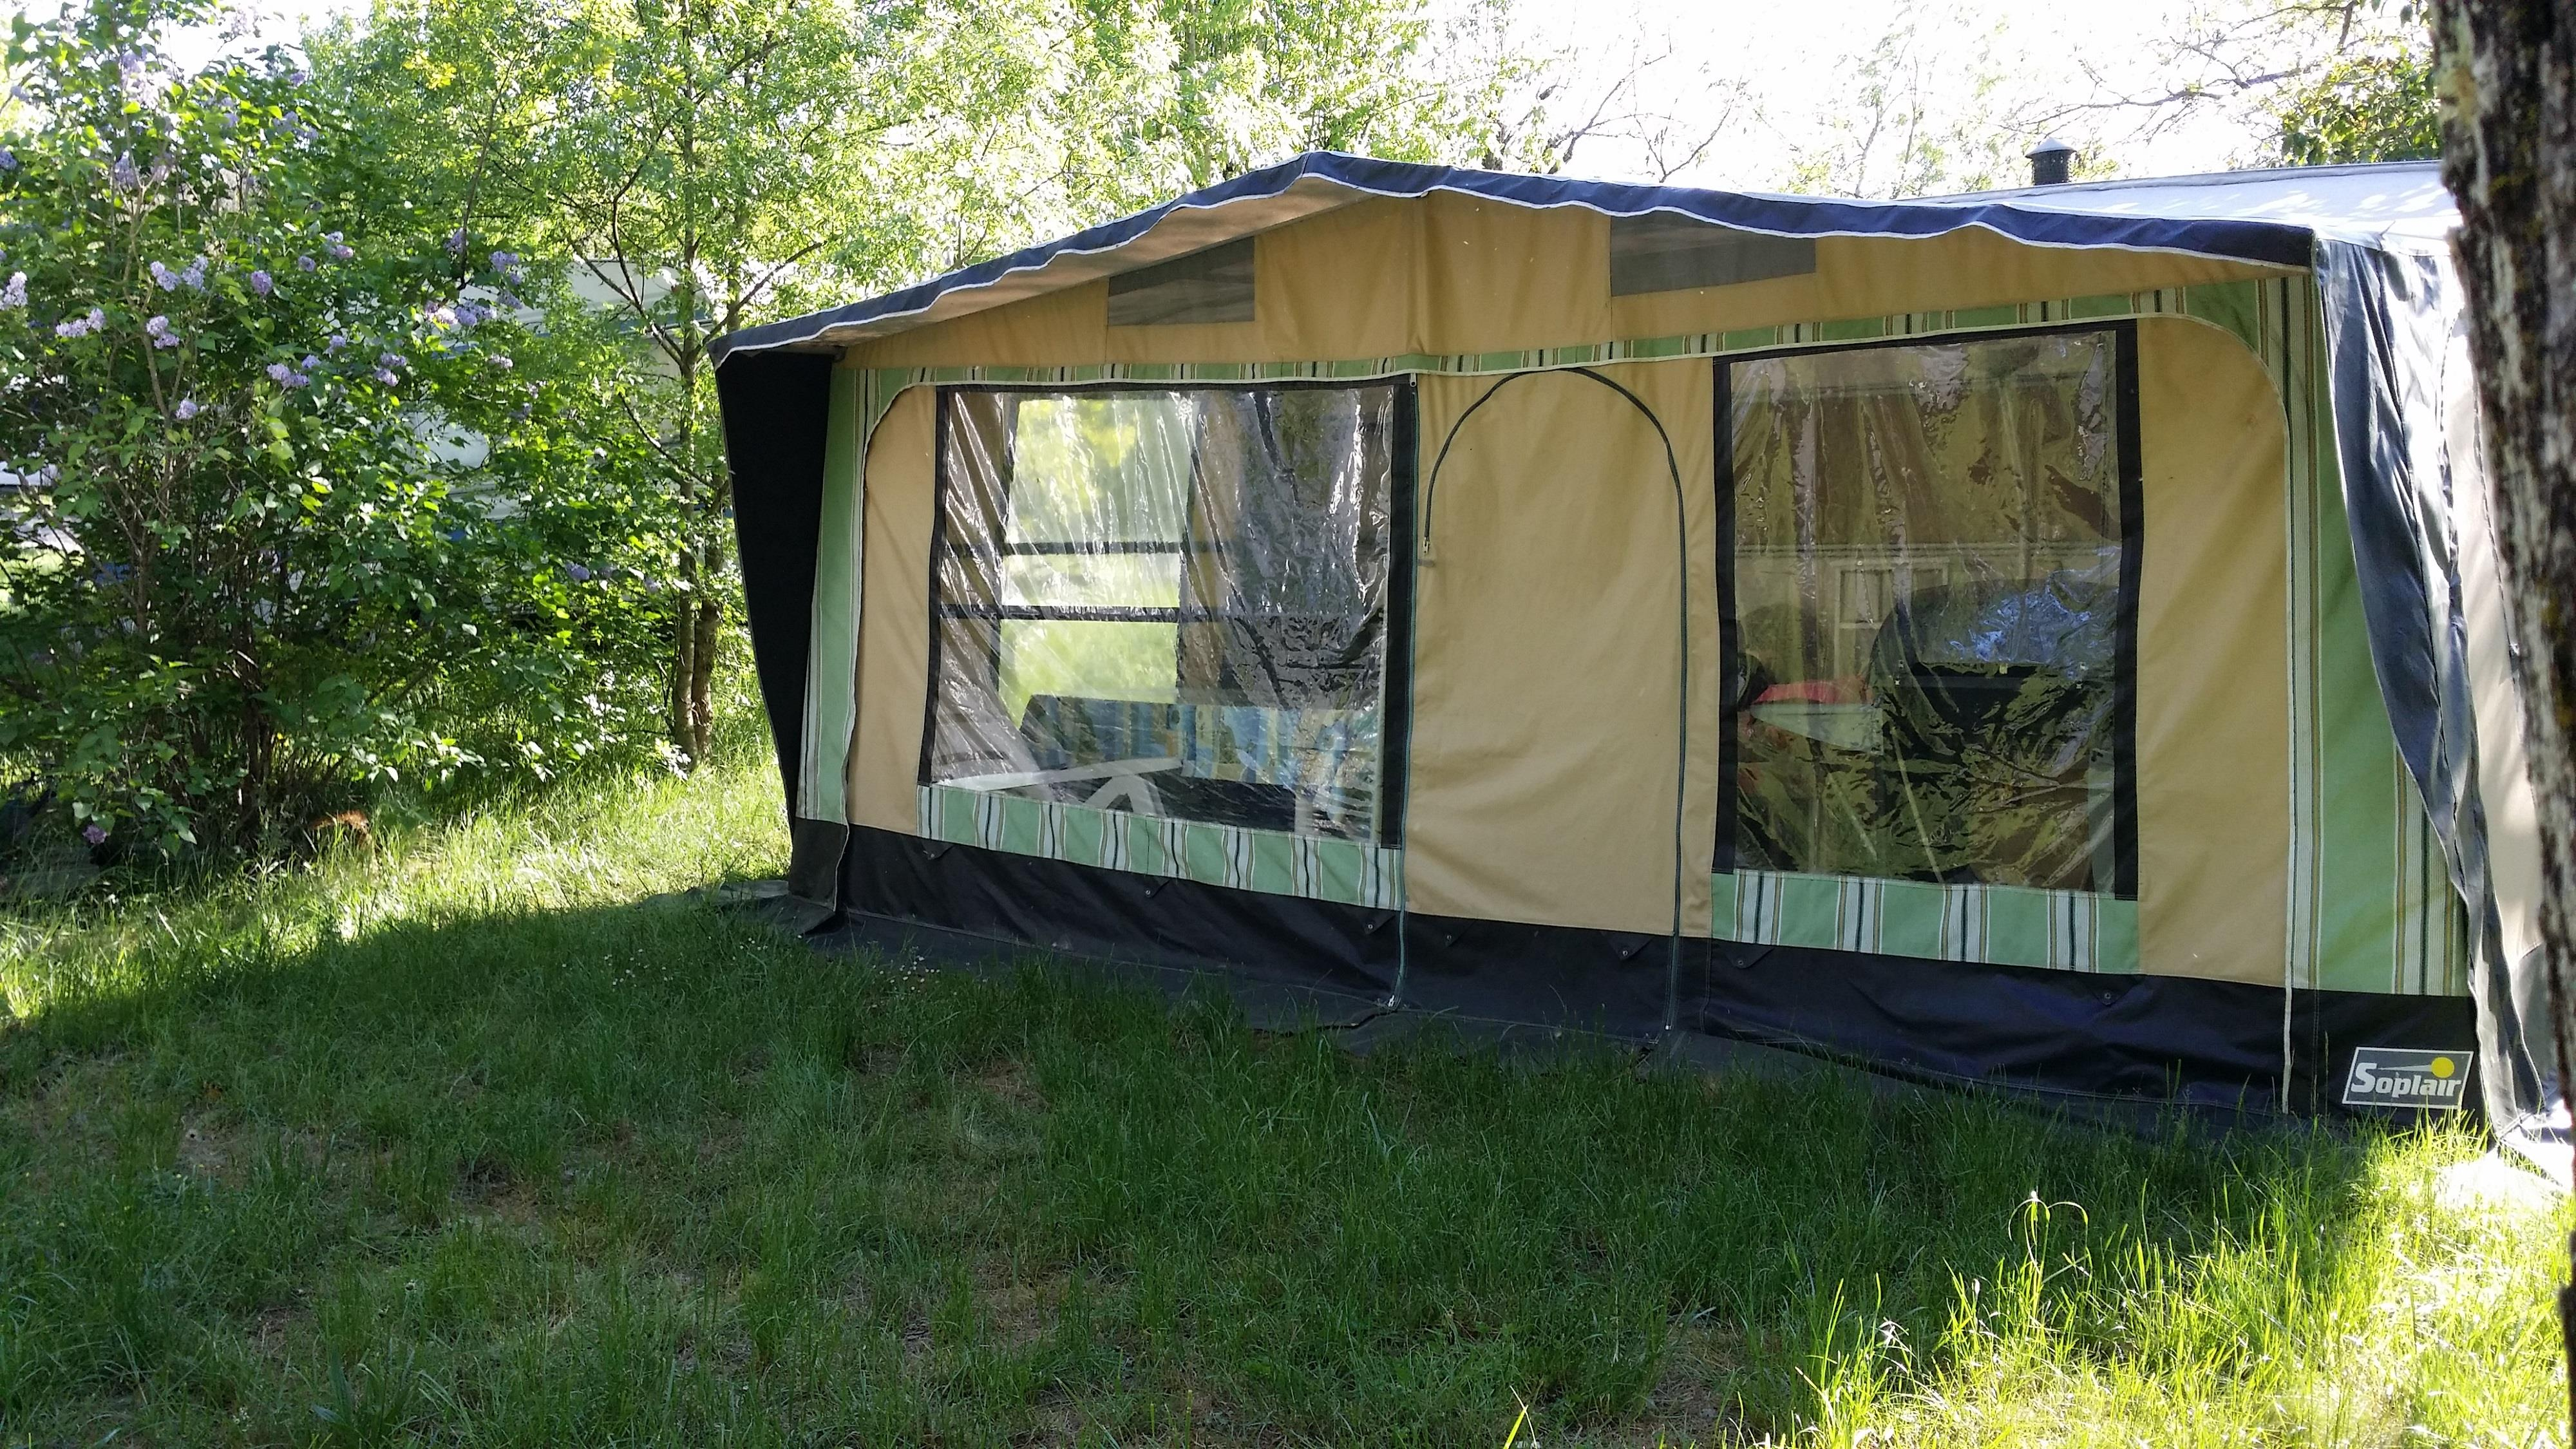 Pitch - Comfort Package (1 Tent, Caravan Or Motorhome / 1 Car / Electricity 10A) - Flower CAMPING SAINT AMAND